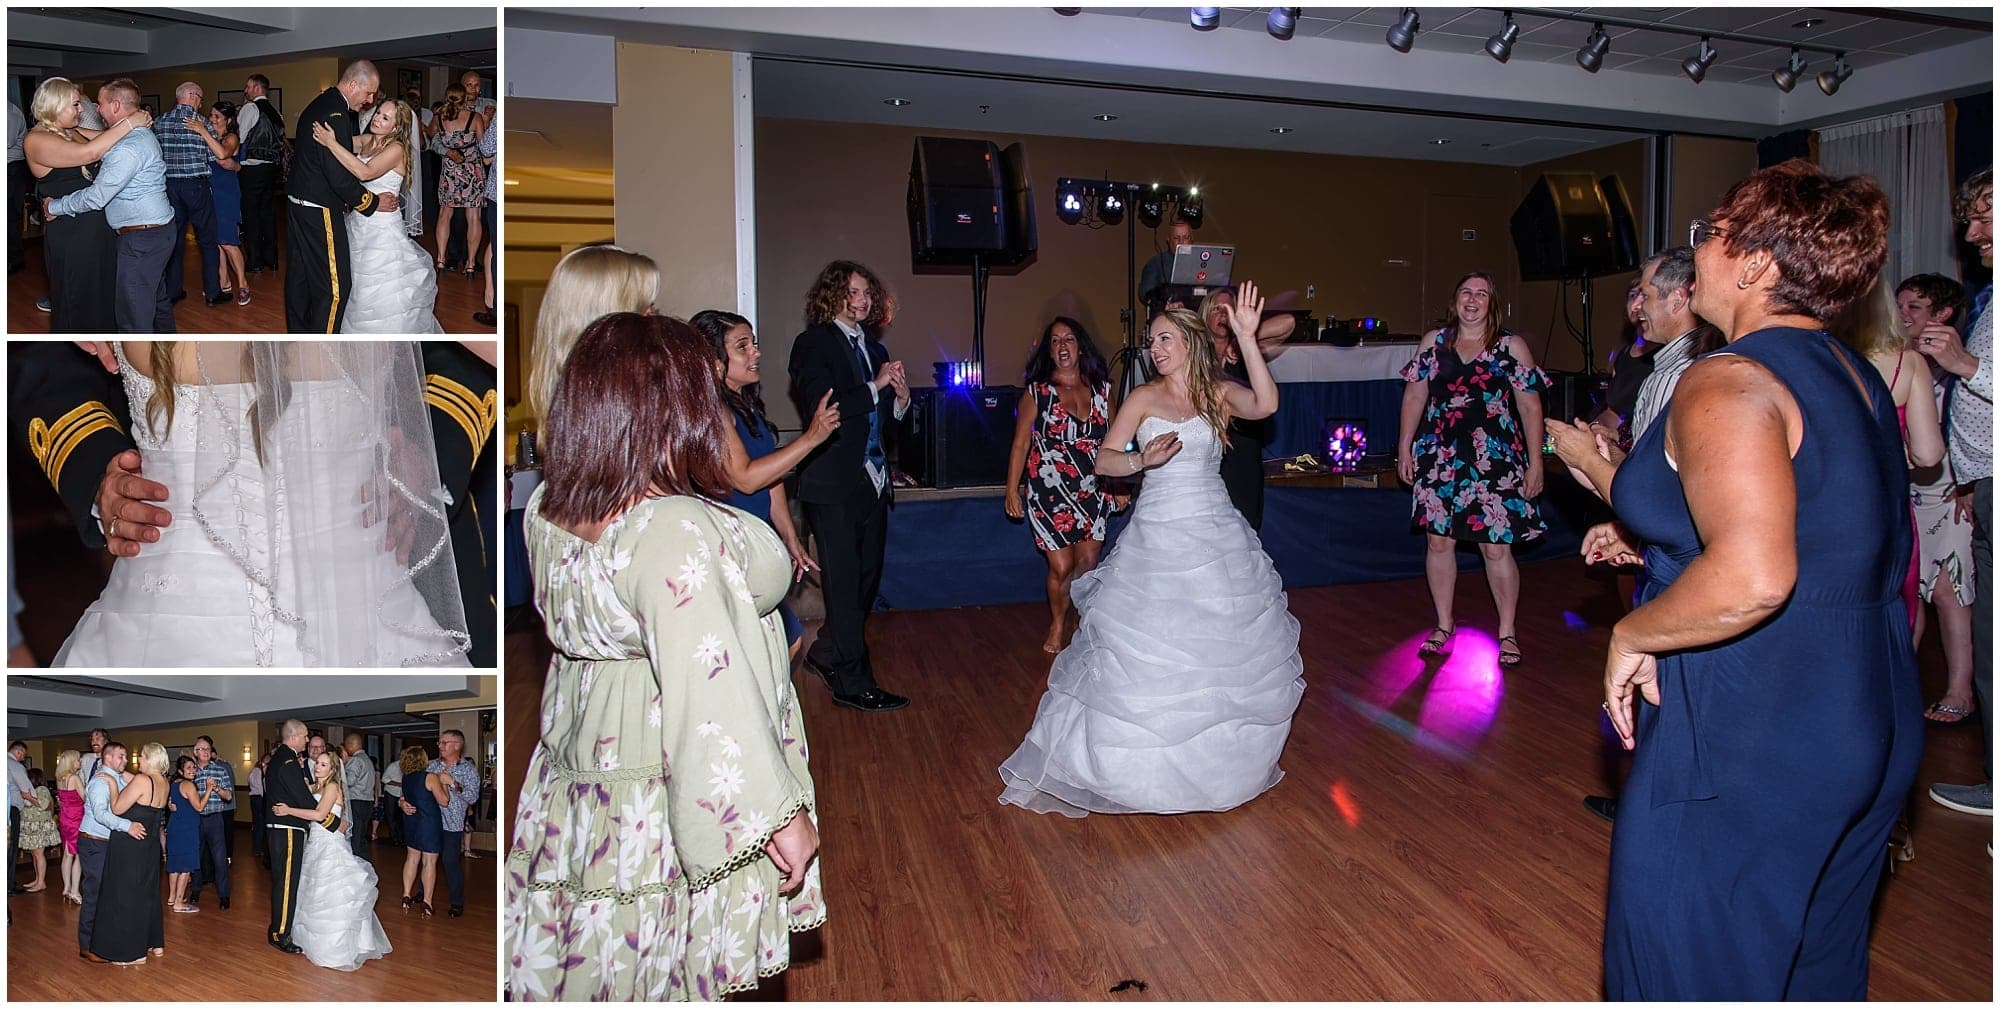 The bride and groom dance with their guests during their Juno Tower wedding reception.